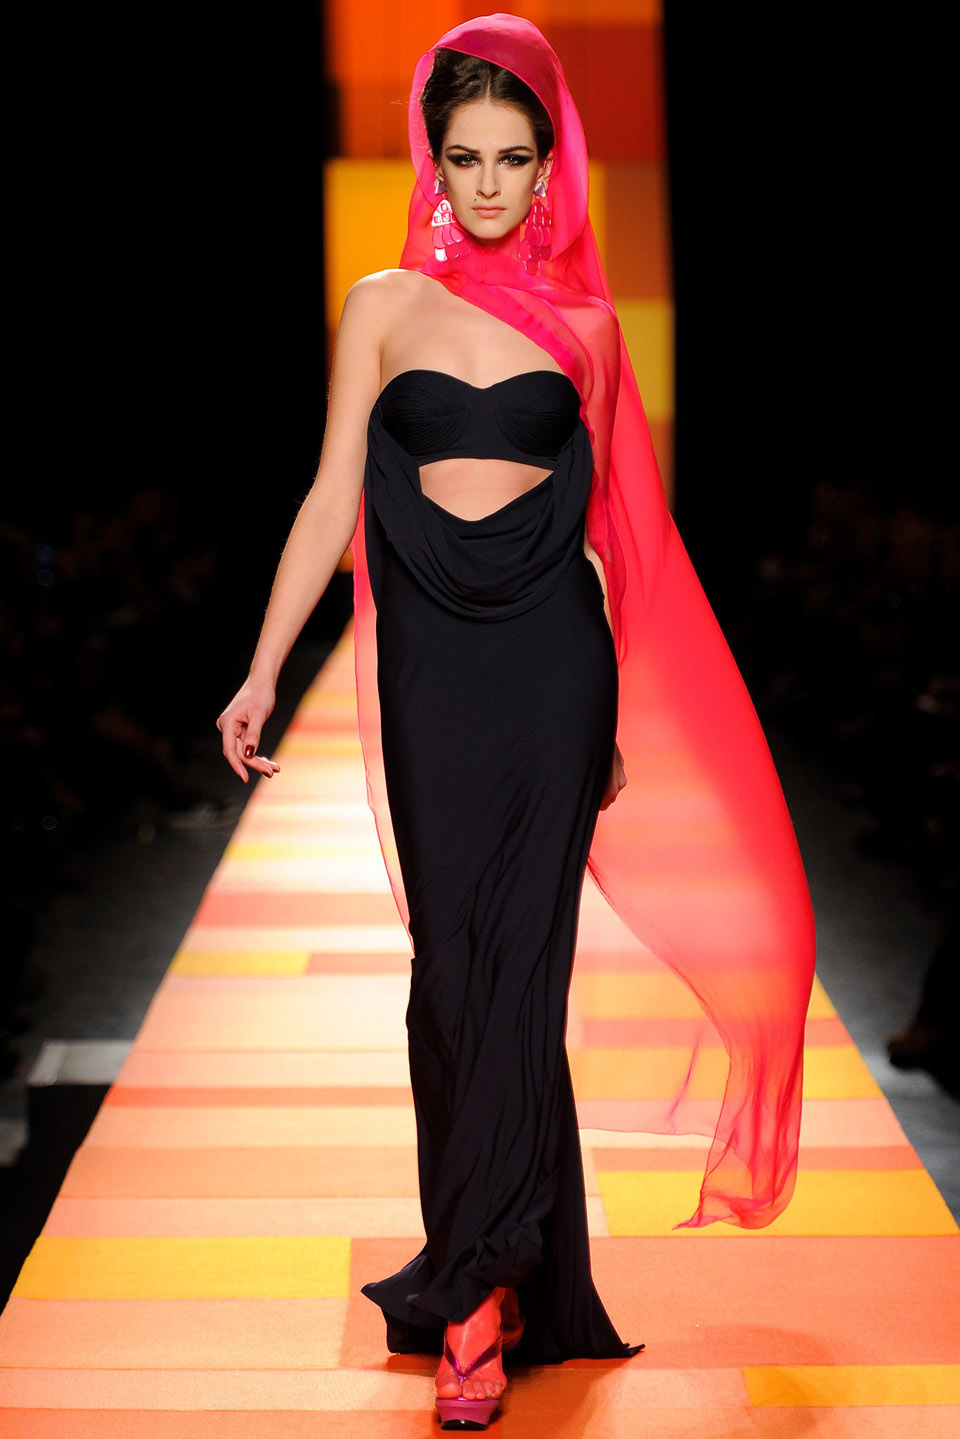 Jean Paul Gaultier Spring - Summer 2013, Haute Couture collection.20